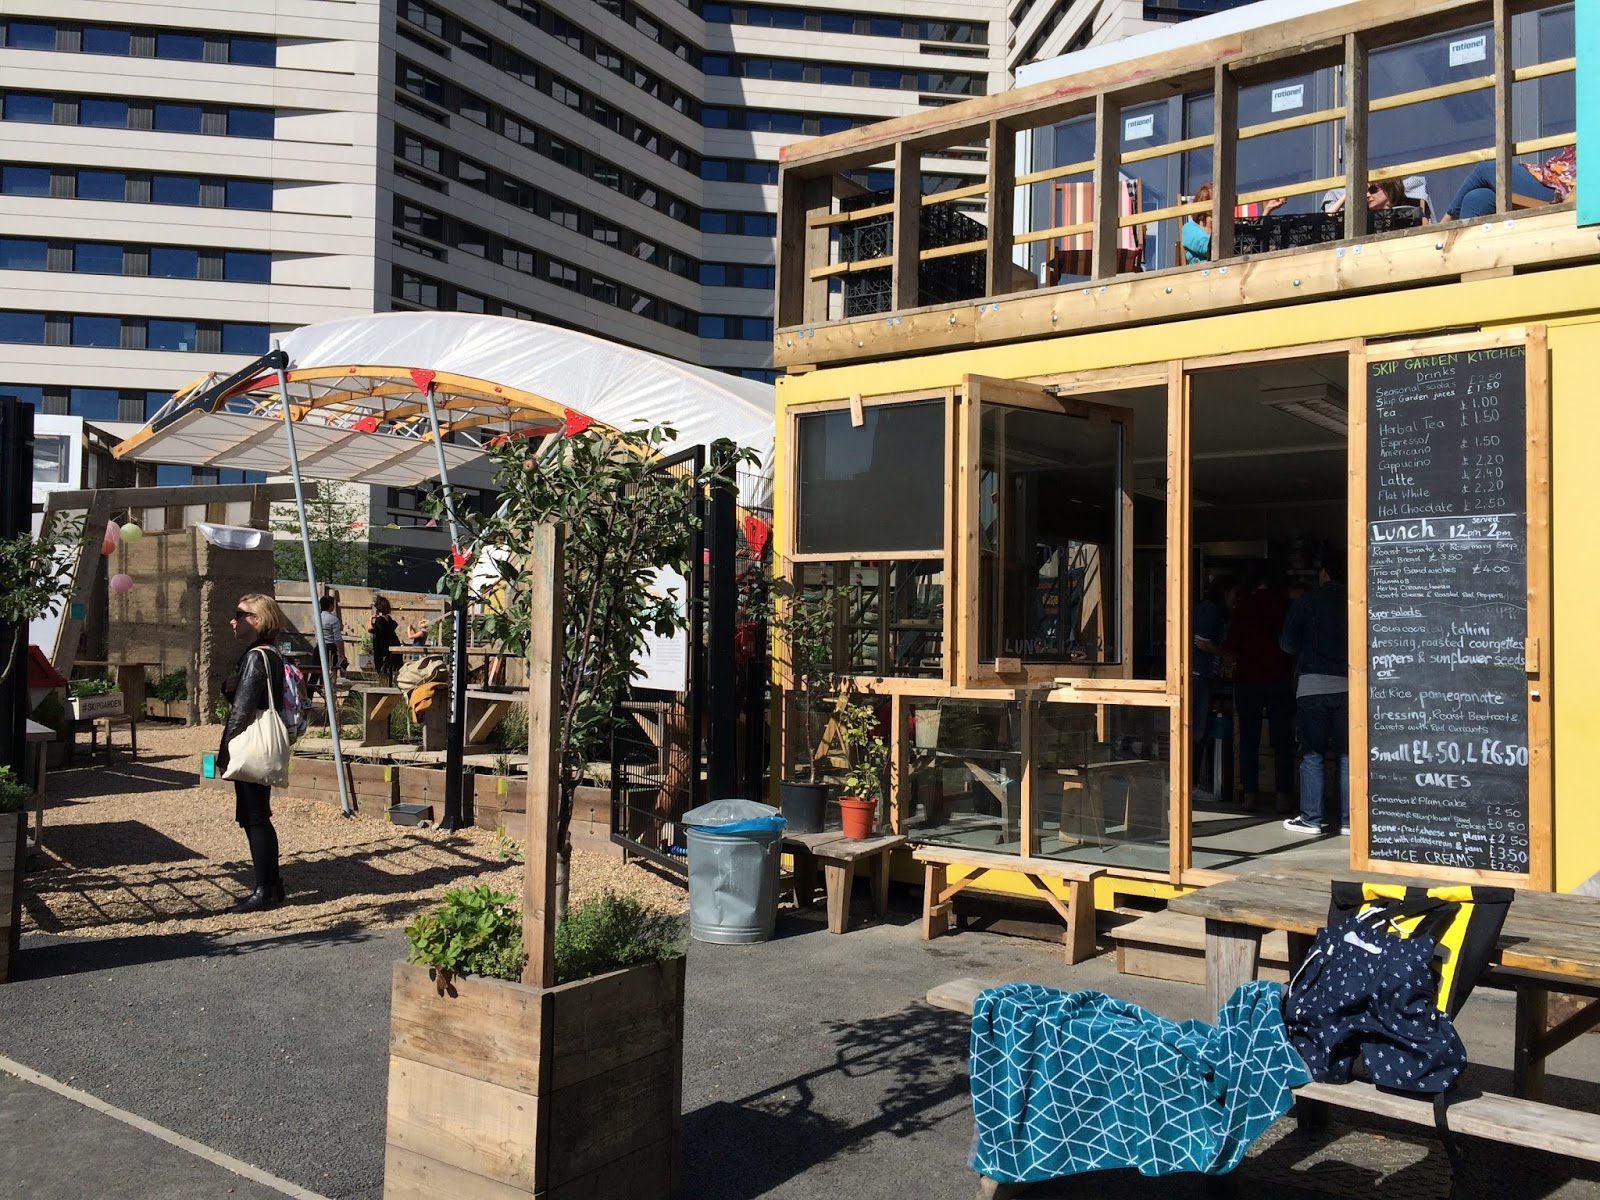 The Garden Kitchen The Peregrinating Penguin Kings Cross Skip Garden A First Rate